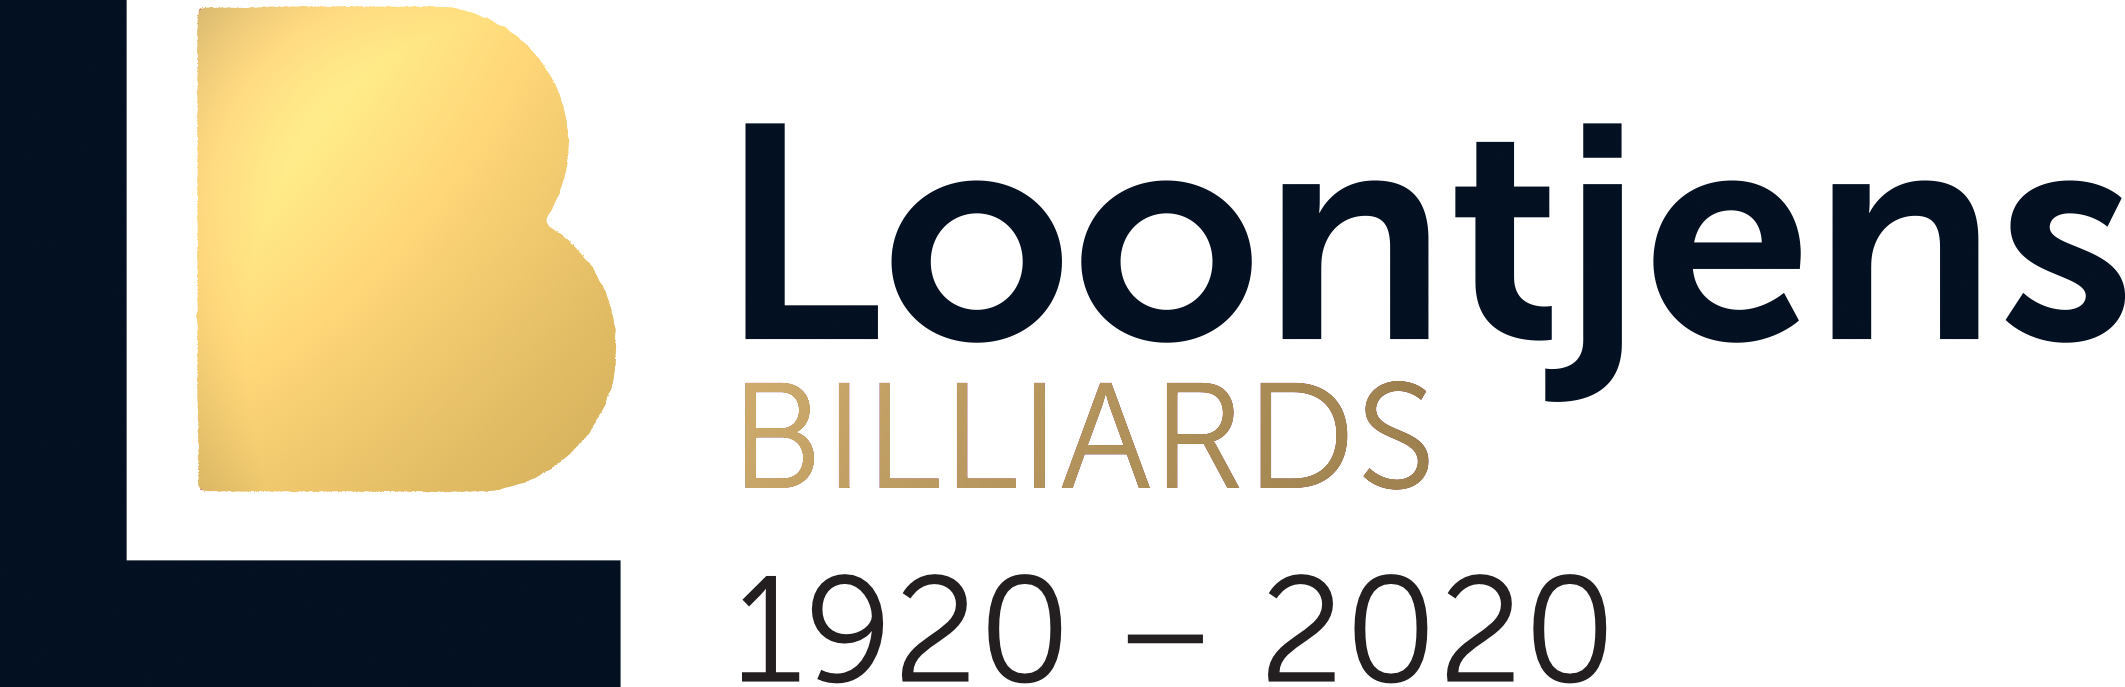 Loontjens Billiards